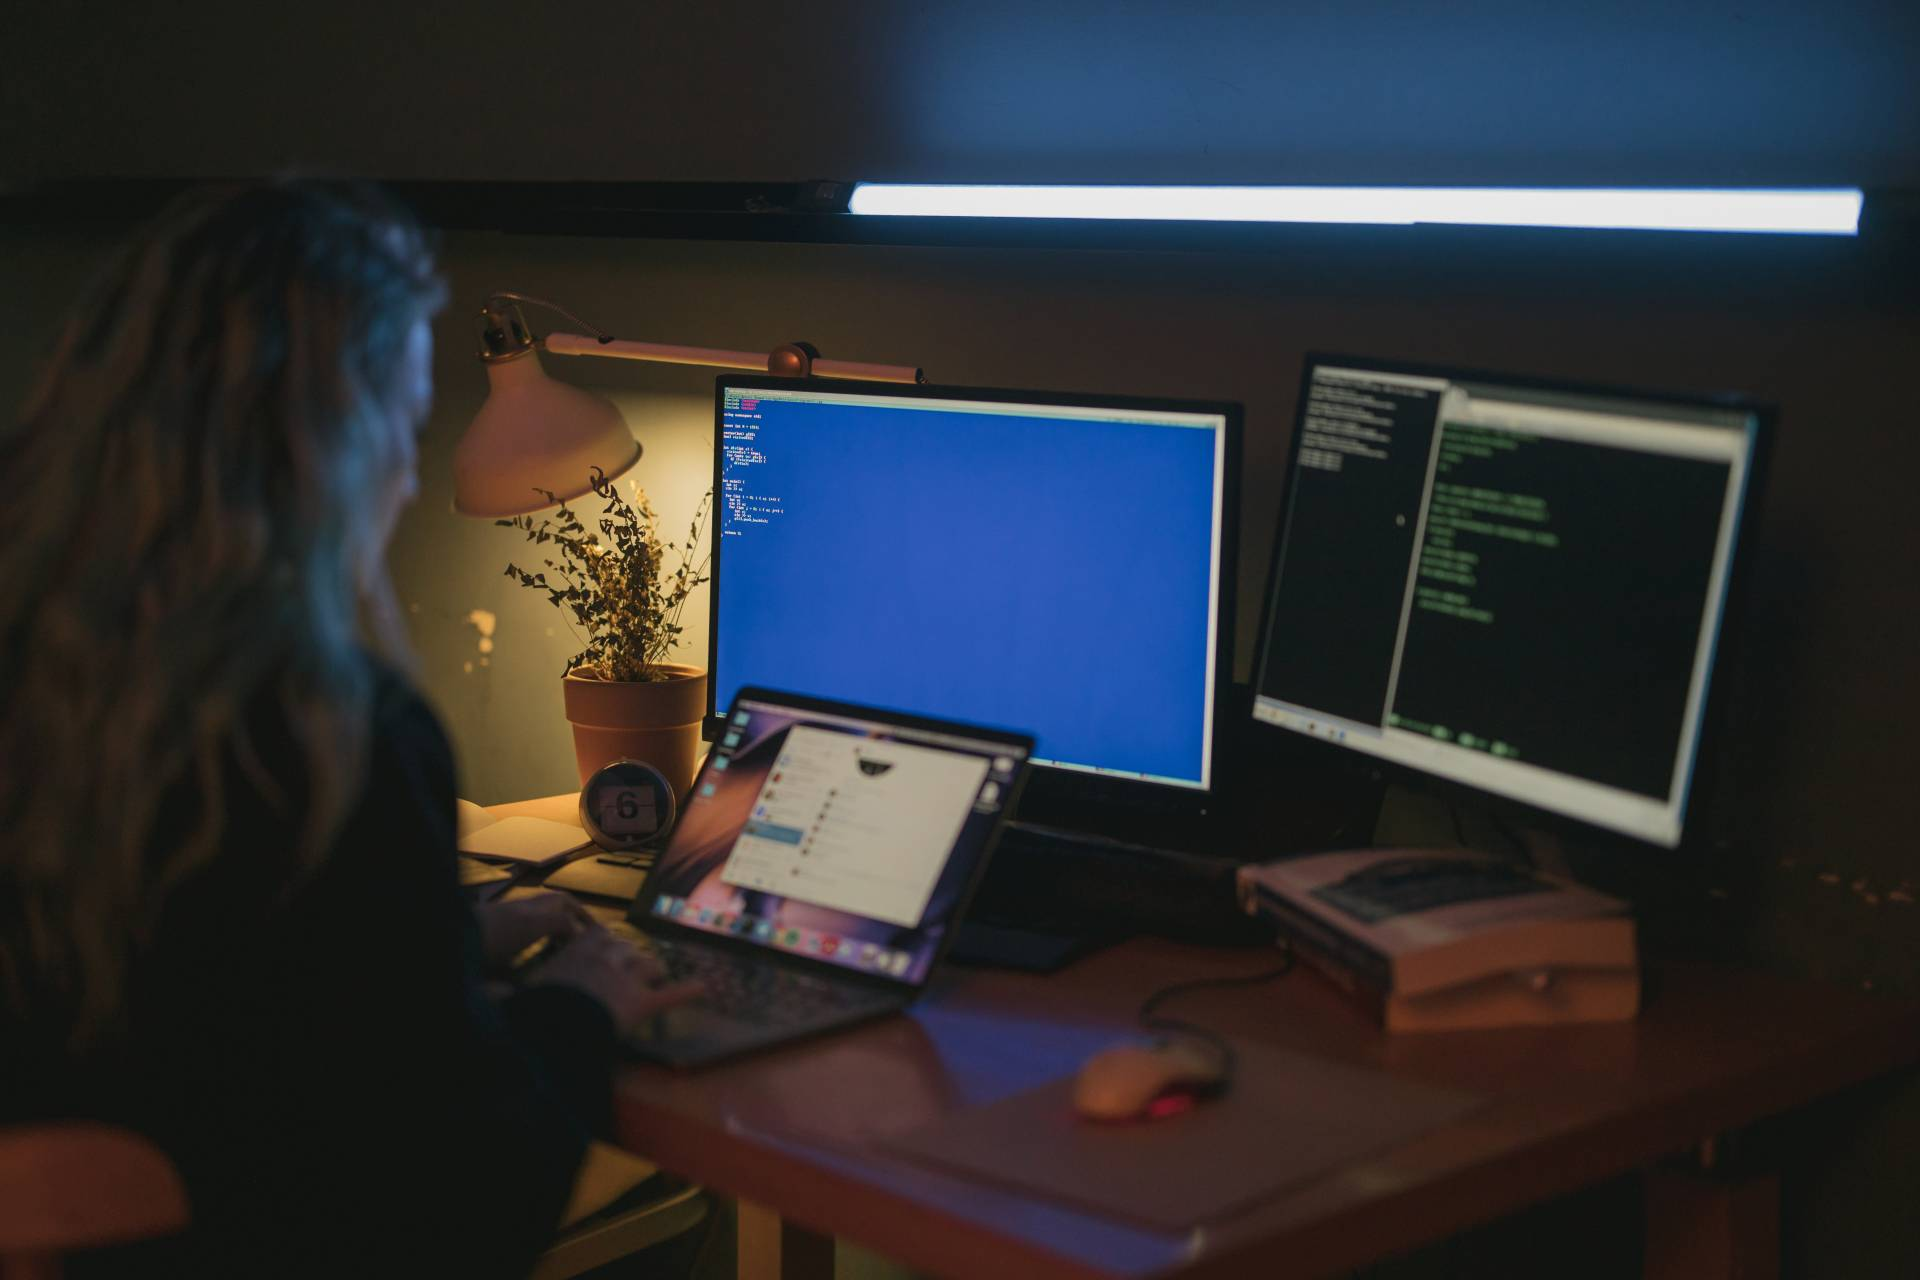 6 Biggest Security Risks Facing Small Businesses